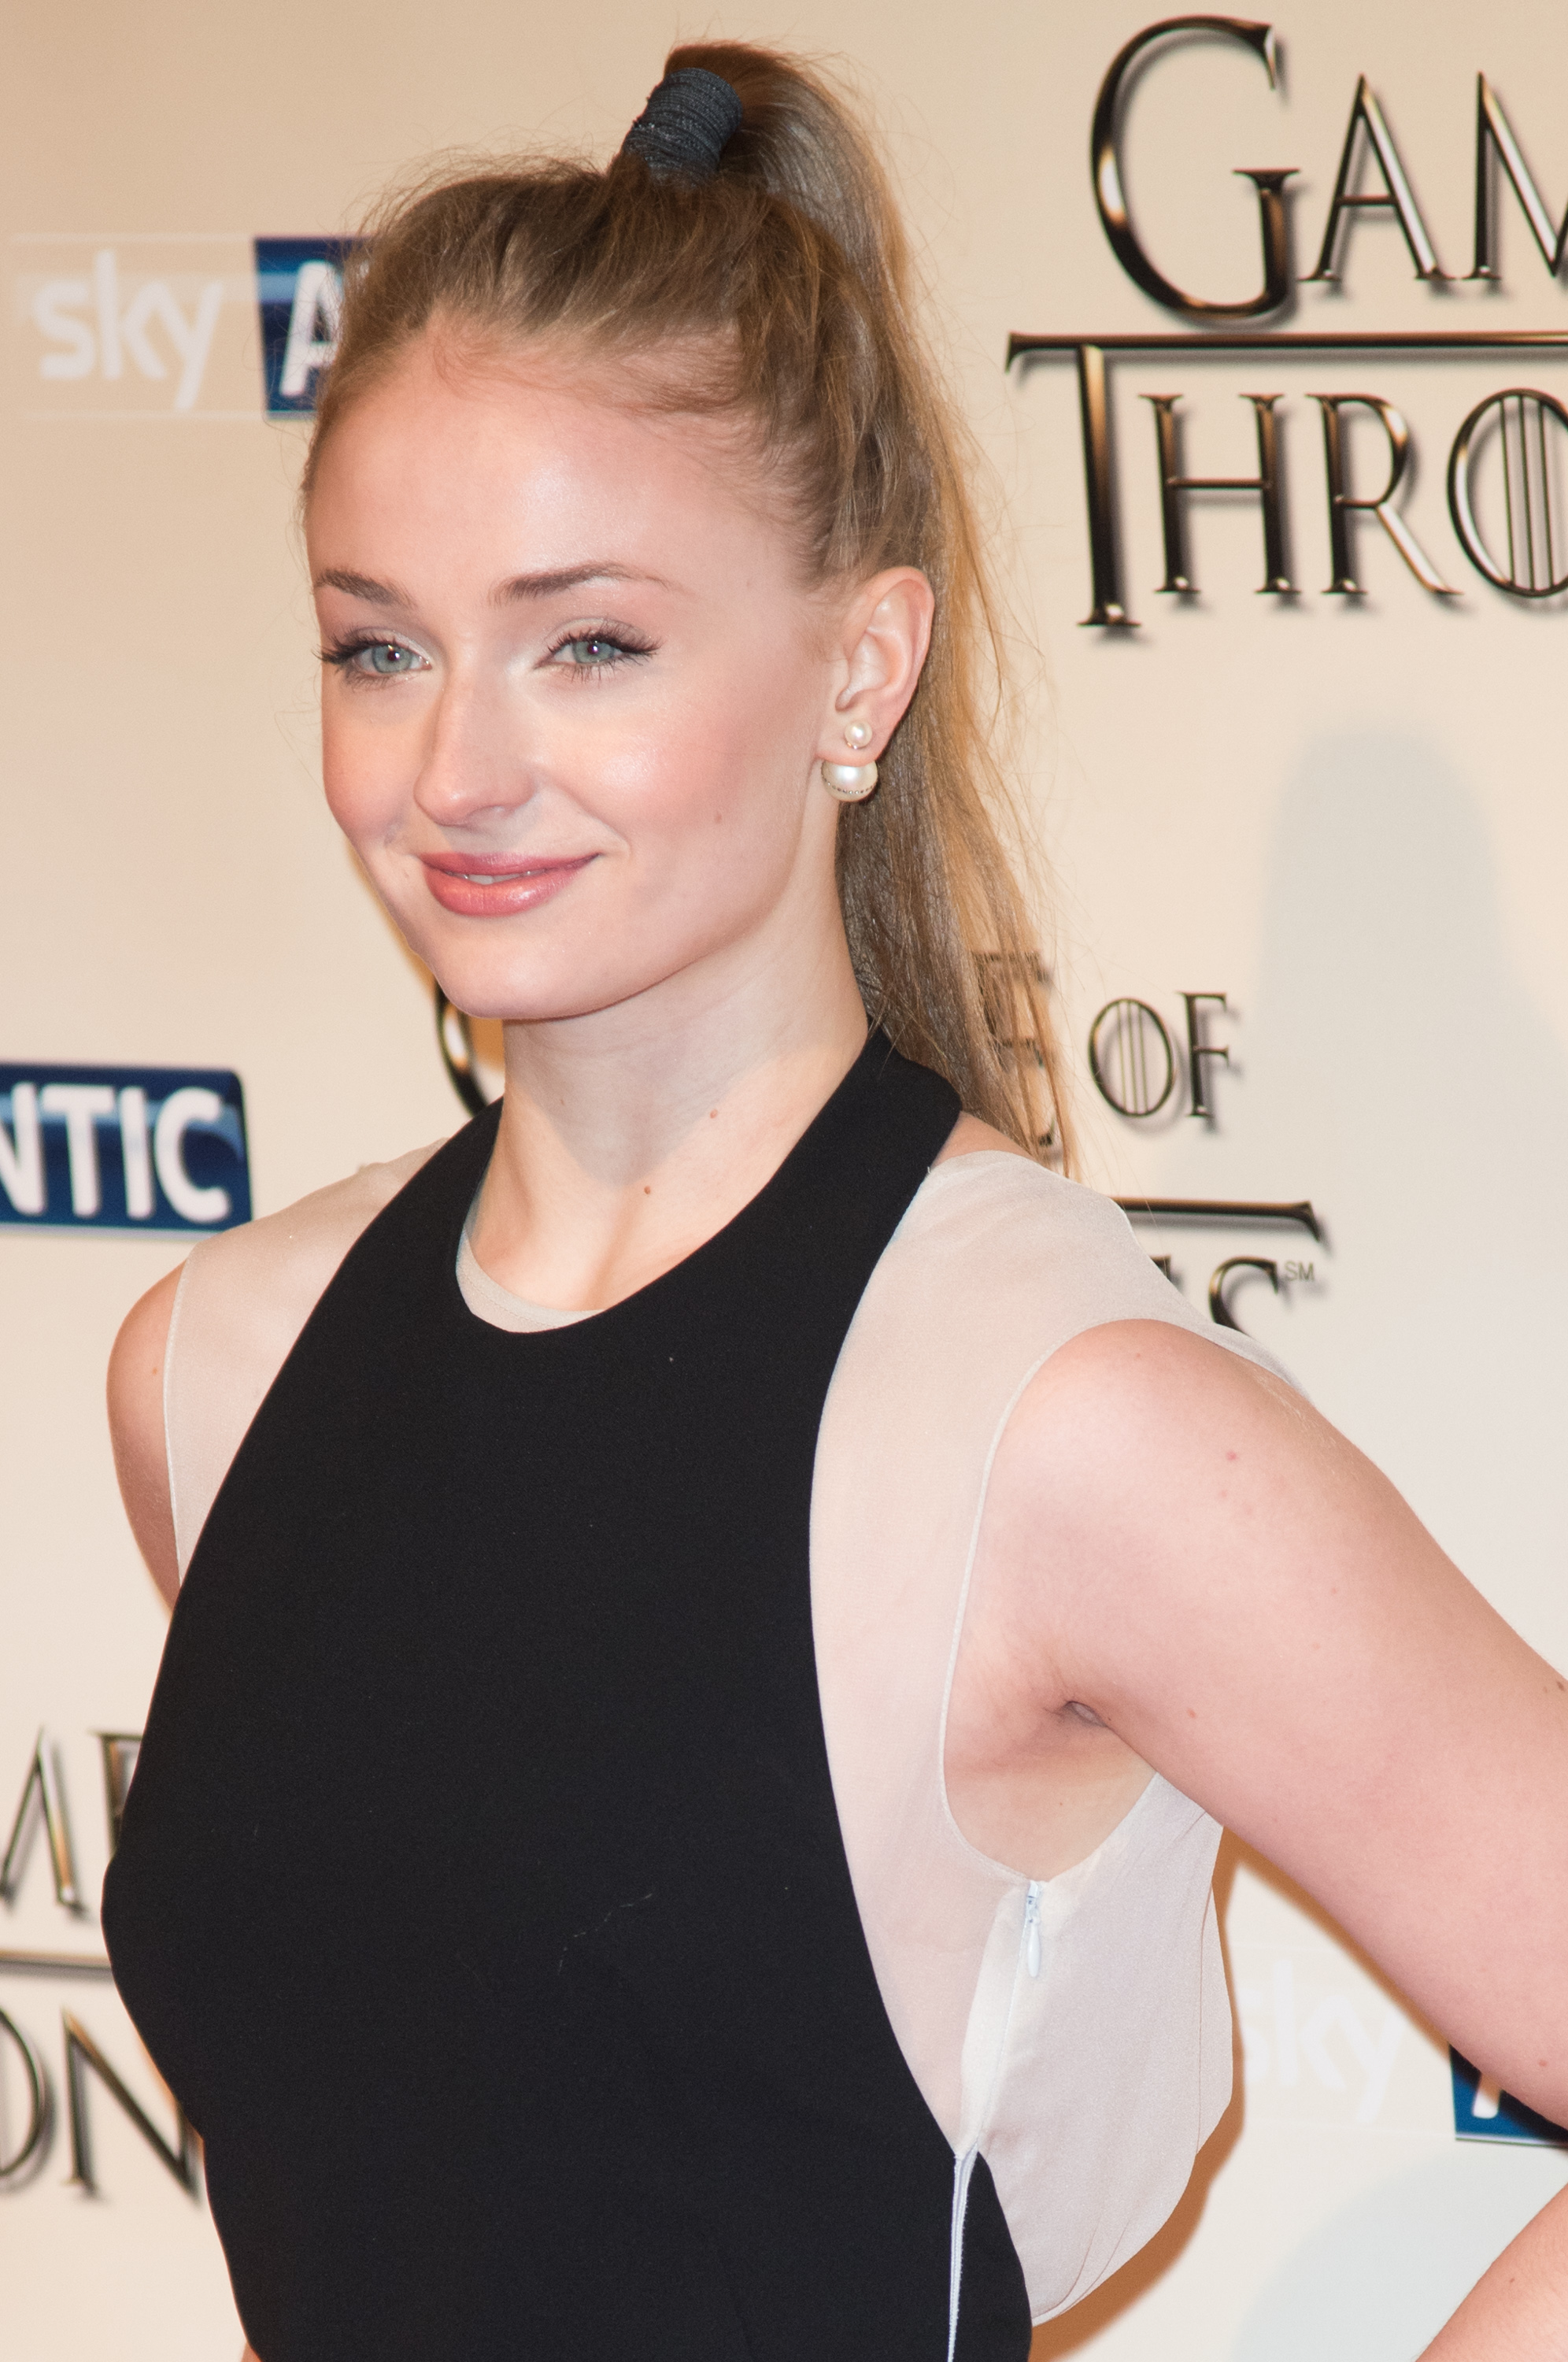 Sophie Turner Actress Photo 480 Of 1372 Pics Wallpaper